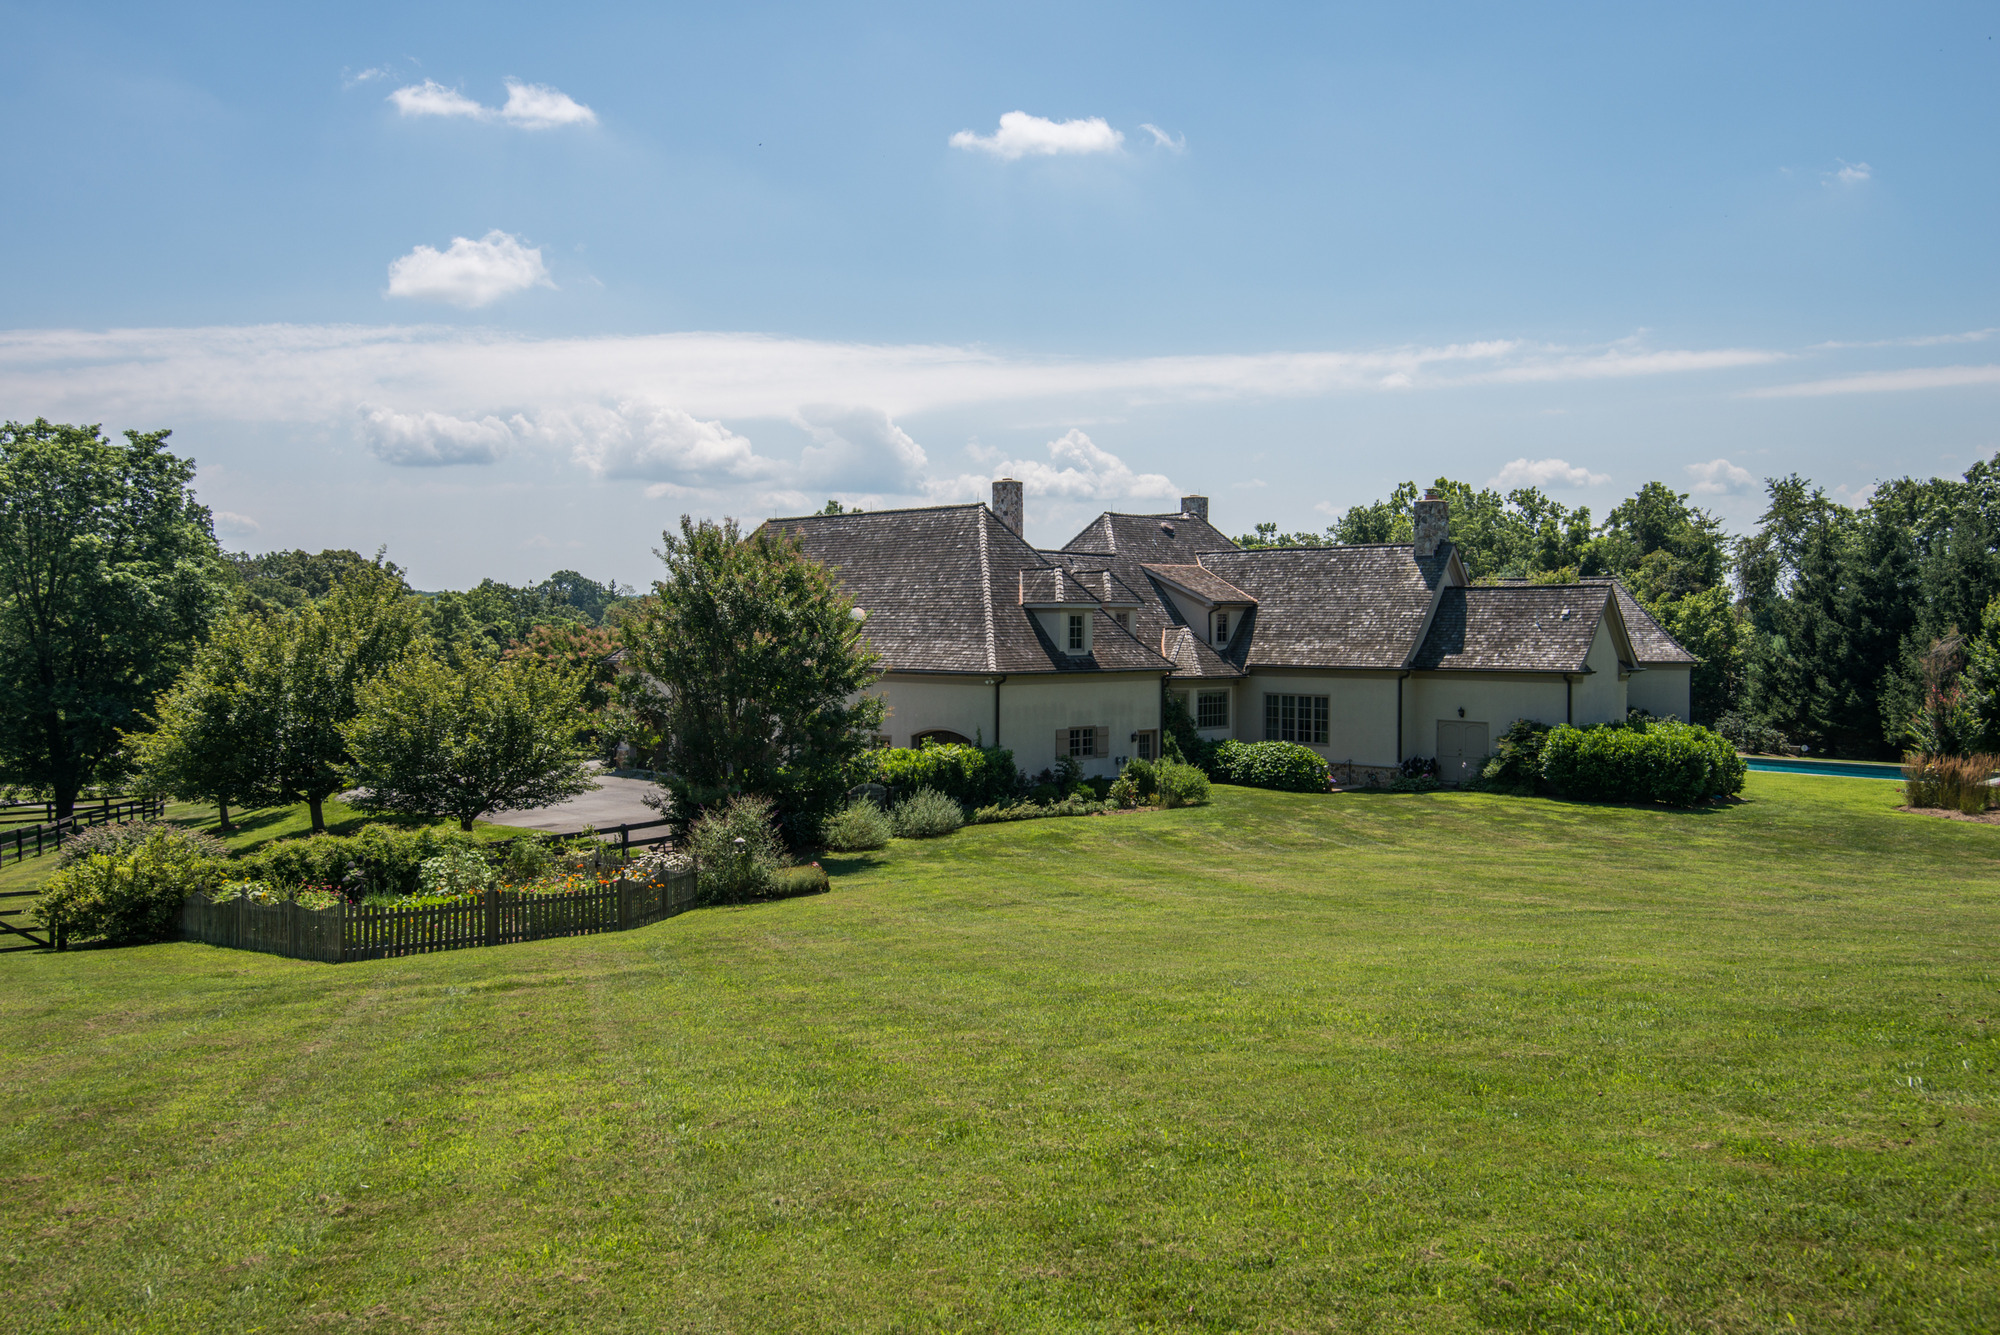 Thomas talbot exclusive real estate middleburg virginia for Le jardin high wine